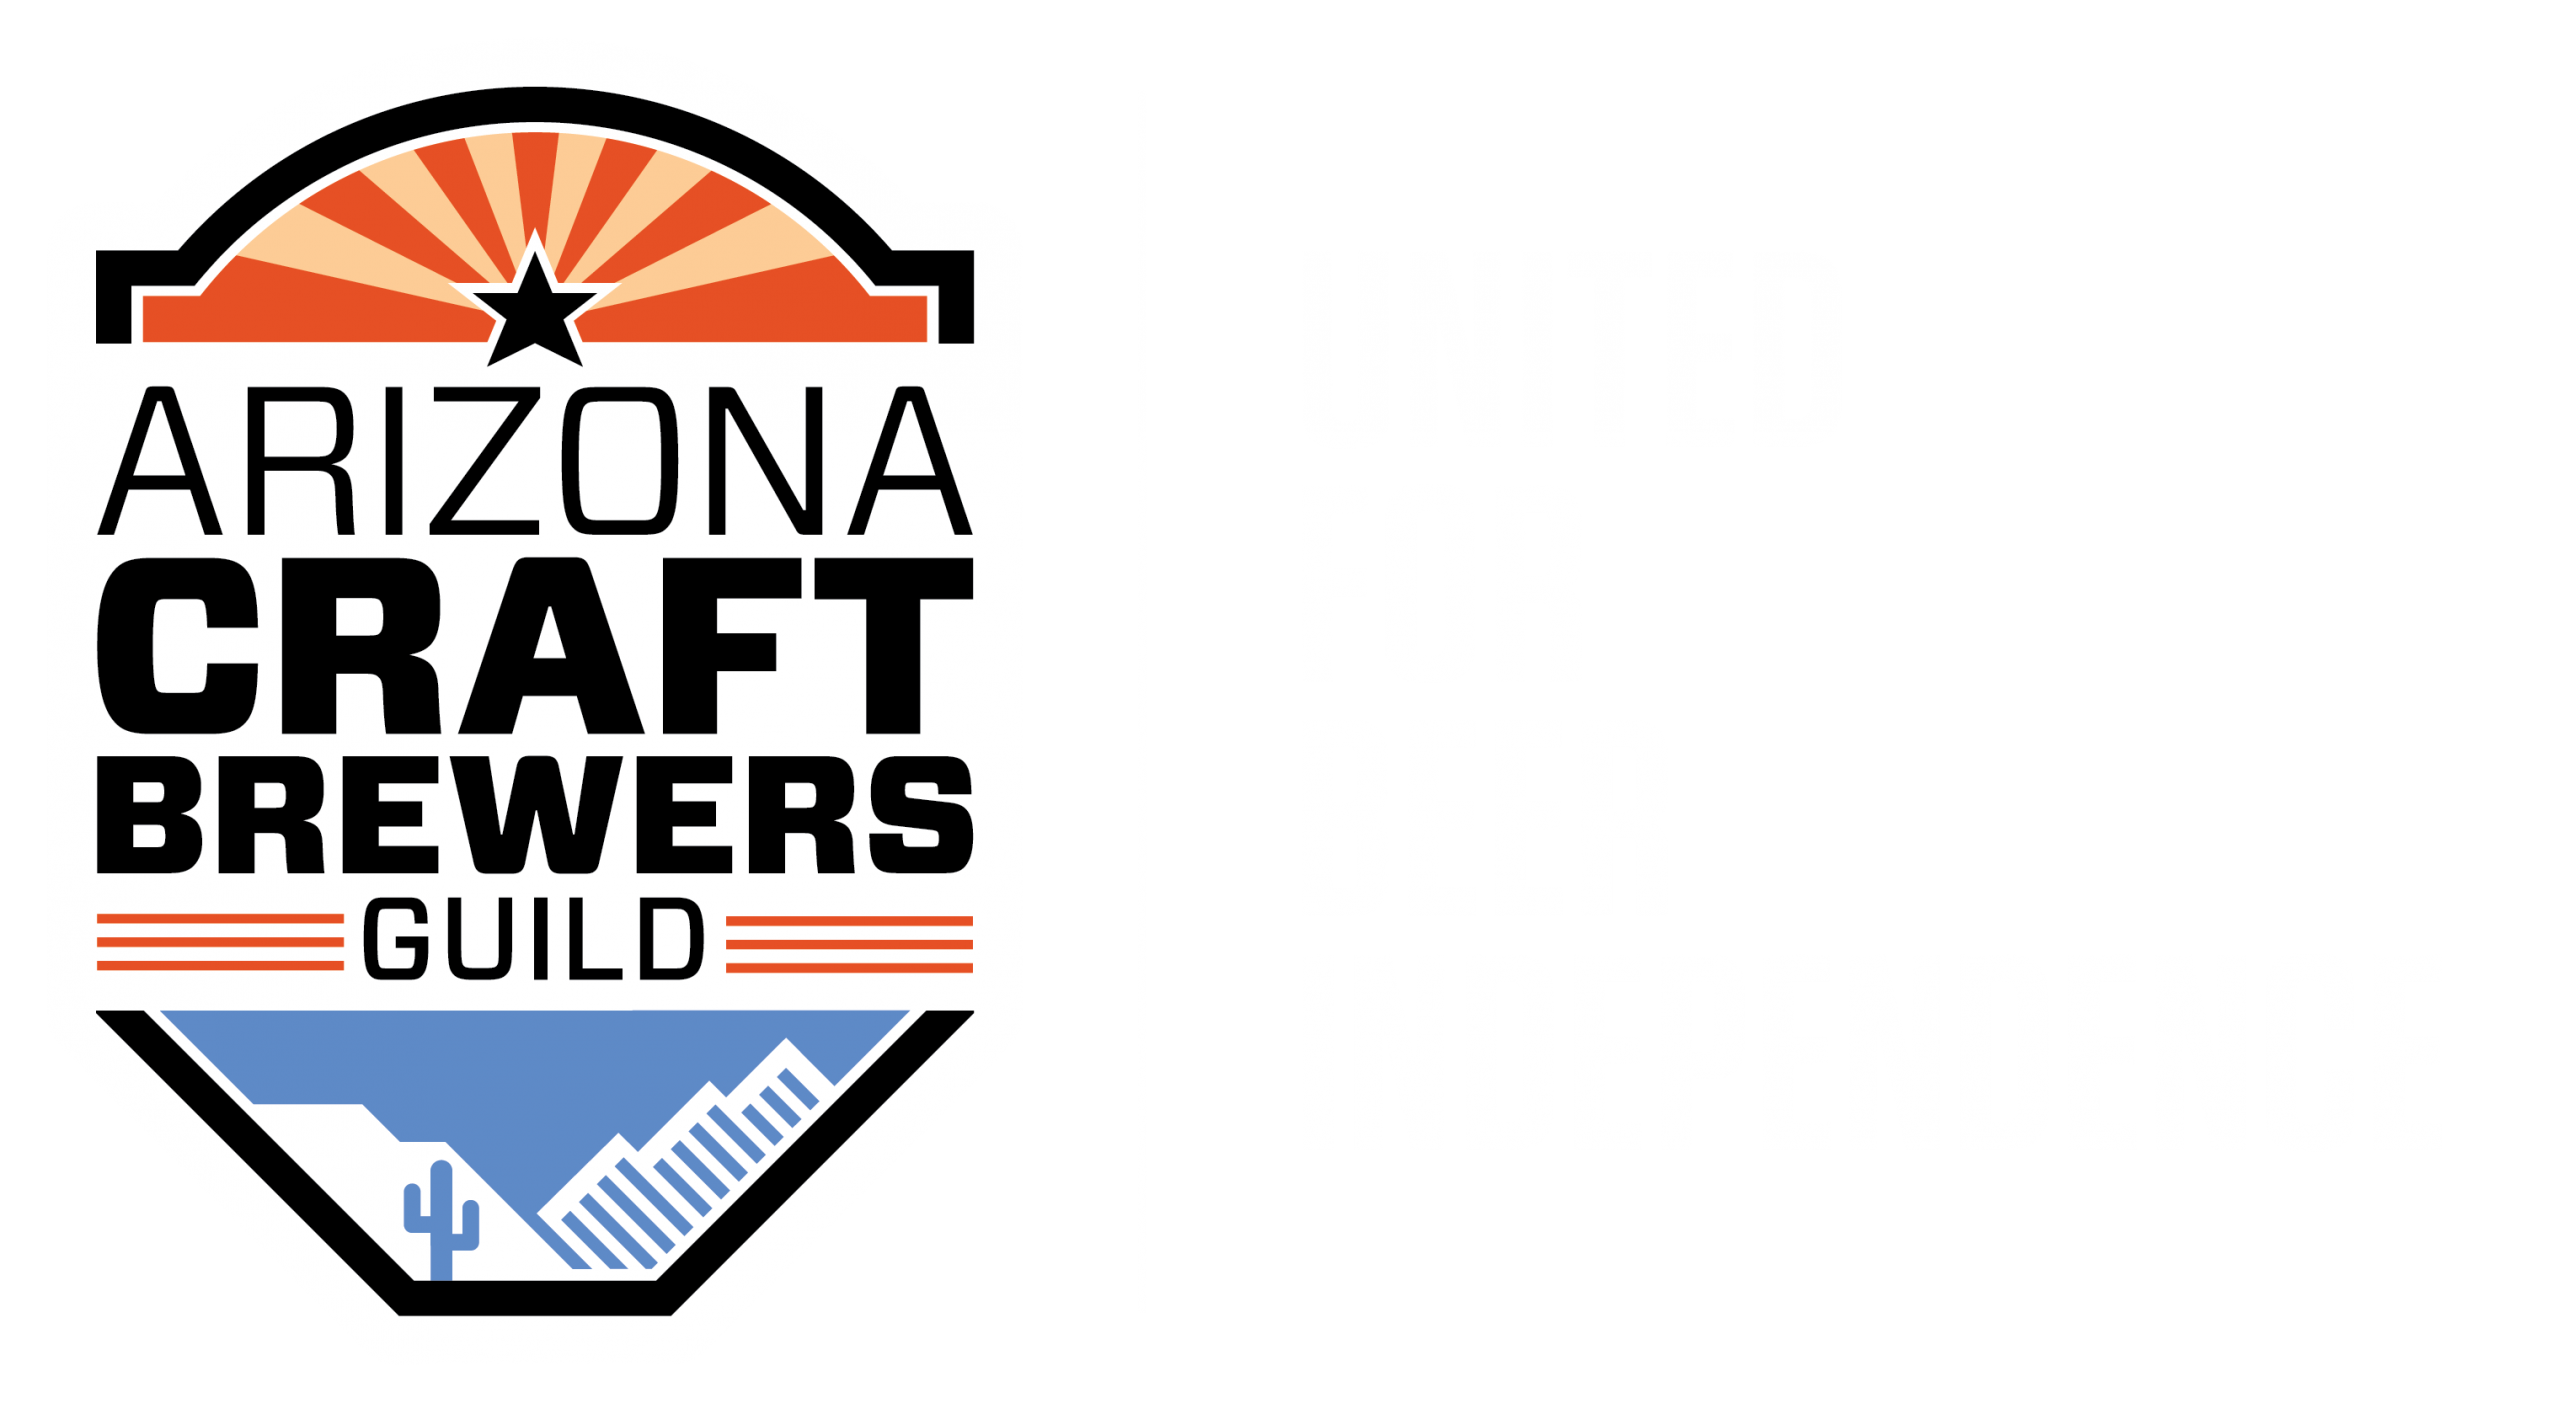 Town of Queen Creek | Arizona Craft Brewers Guild